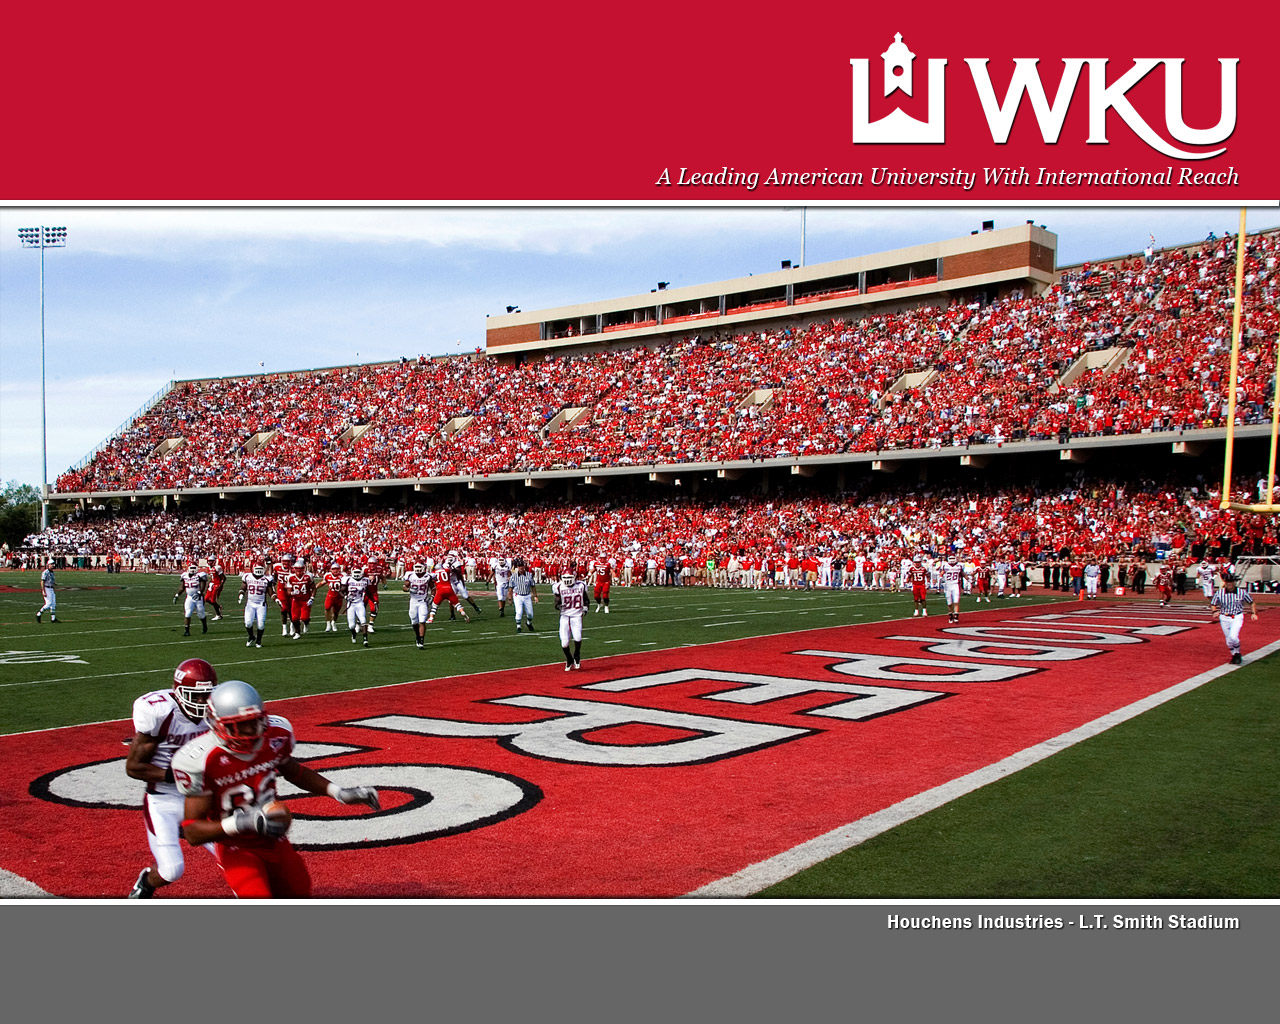 western kentucky university computer backgrounds